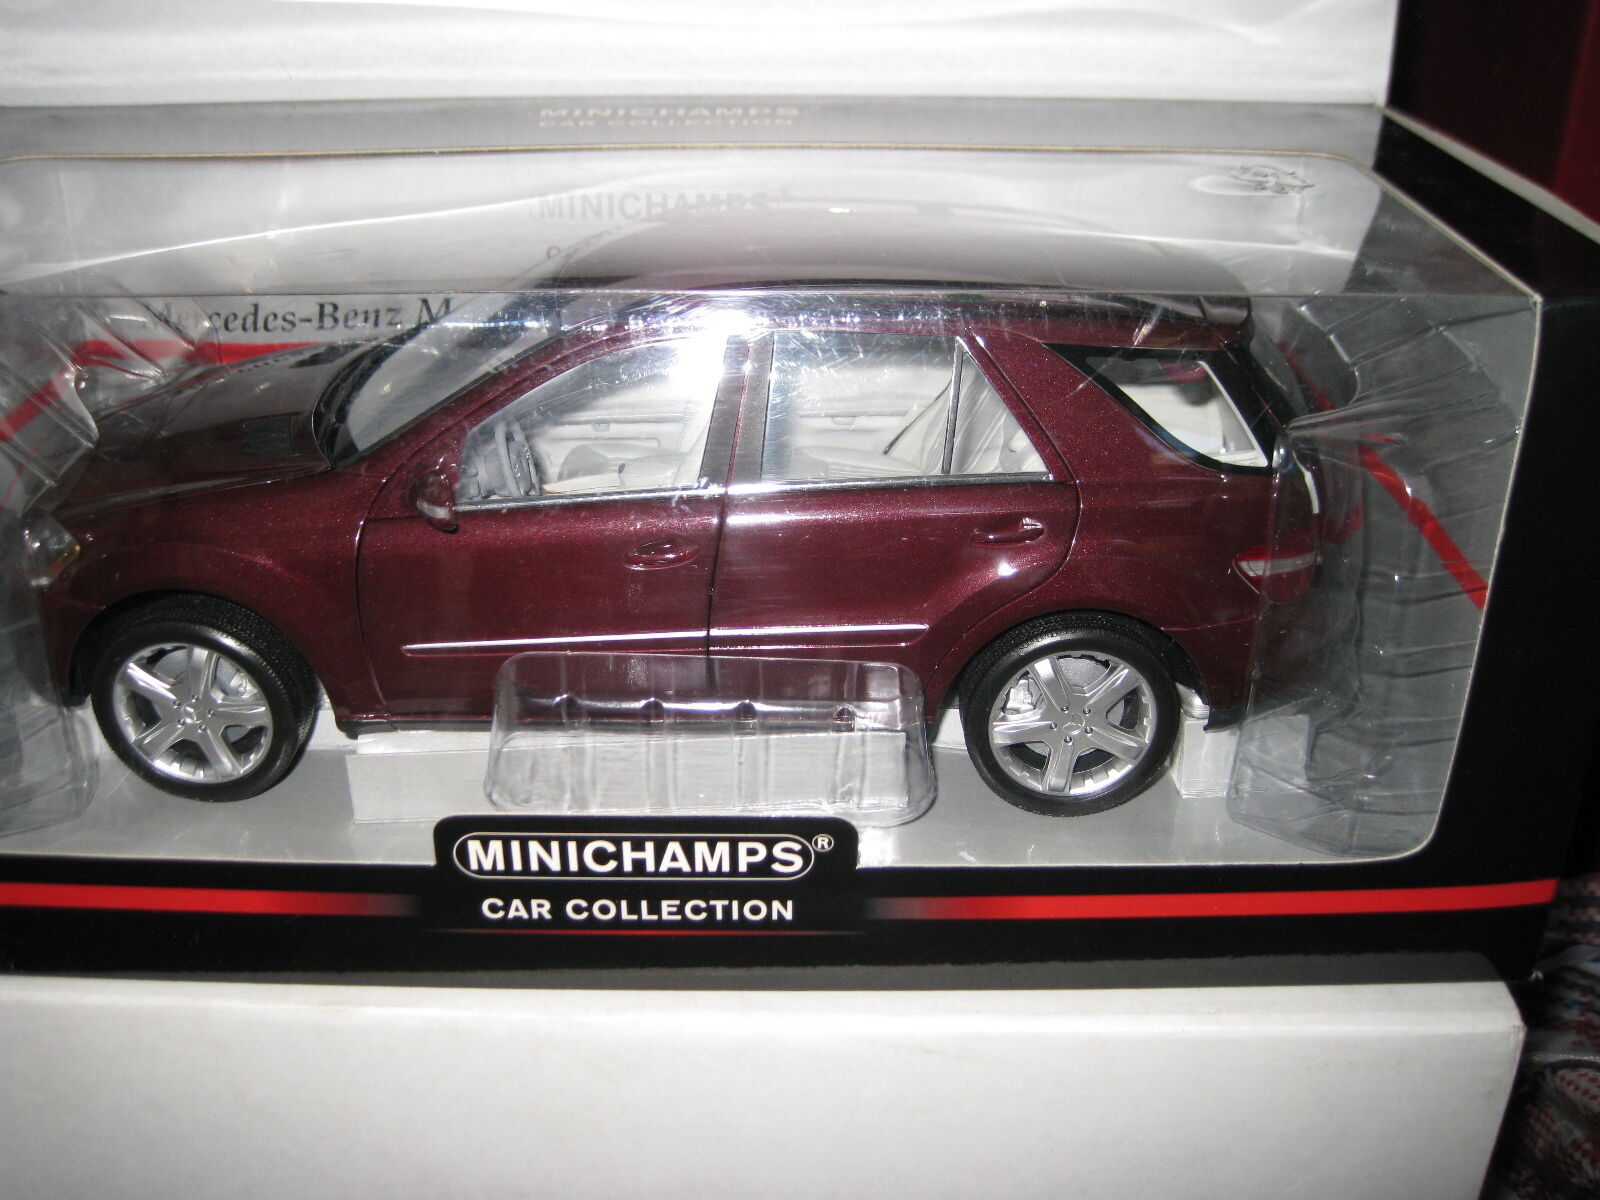 1.18 MINICHAMPS MERCEDES BENZ M CLASS 2005 RED METALLIC AWESOME AWESOME AWESOME LOOKING MODEL 80dd4a